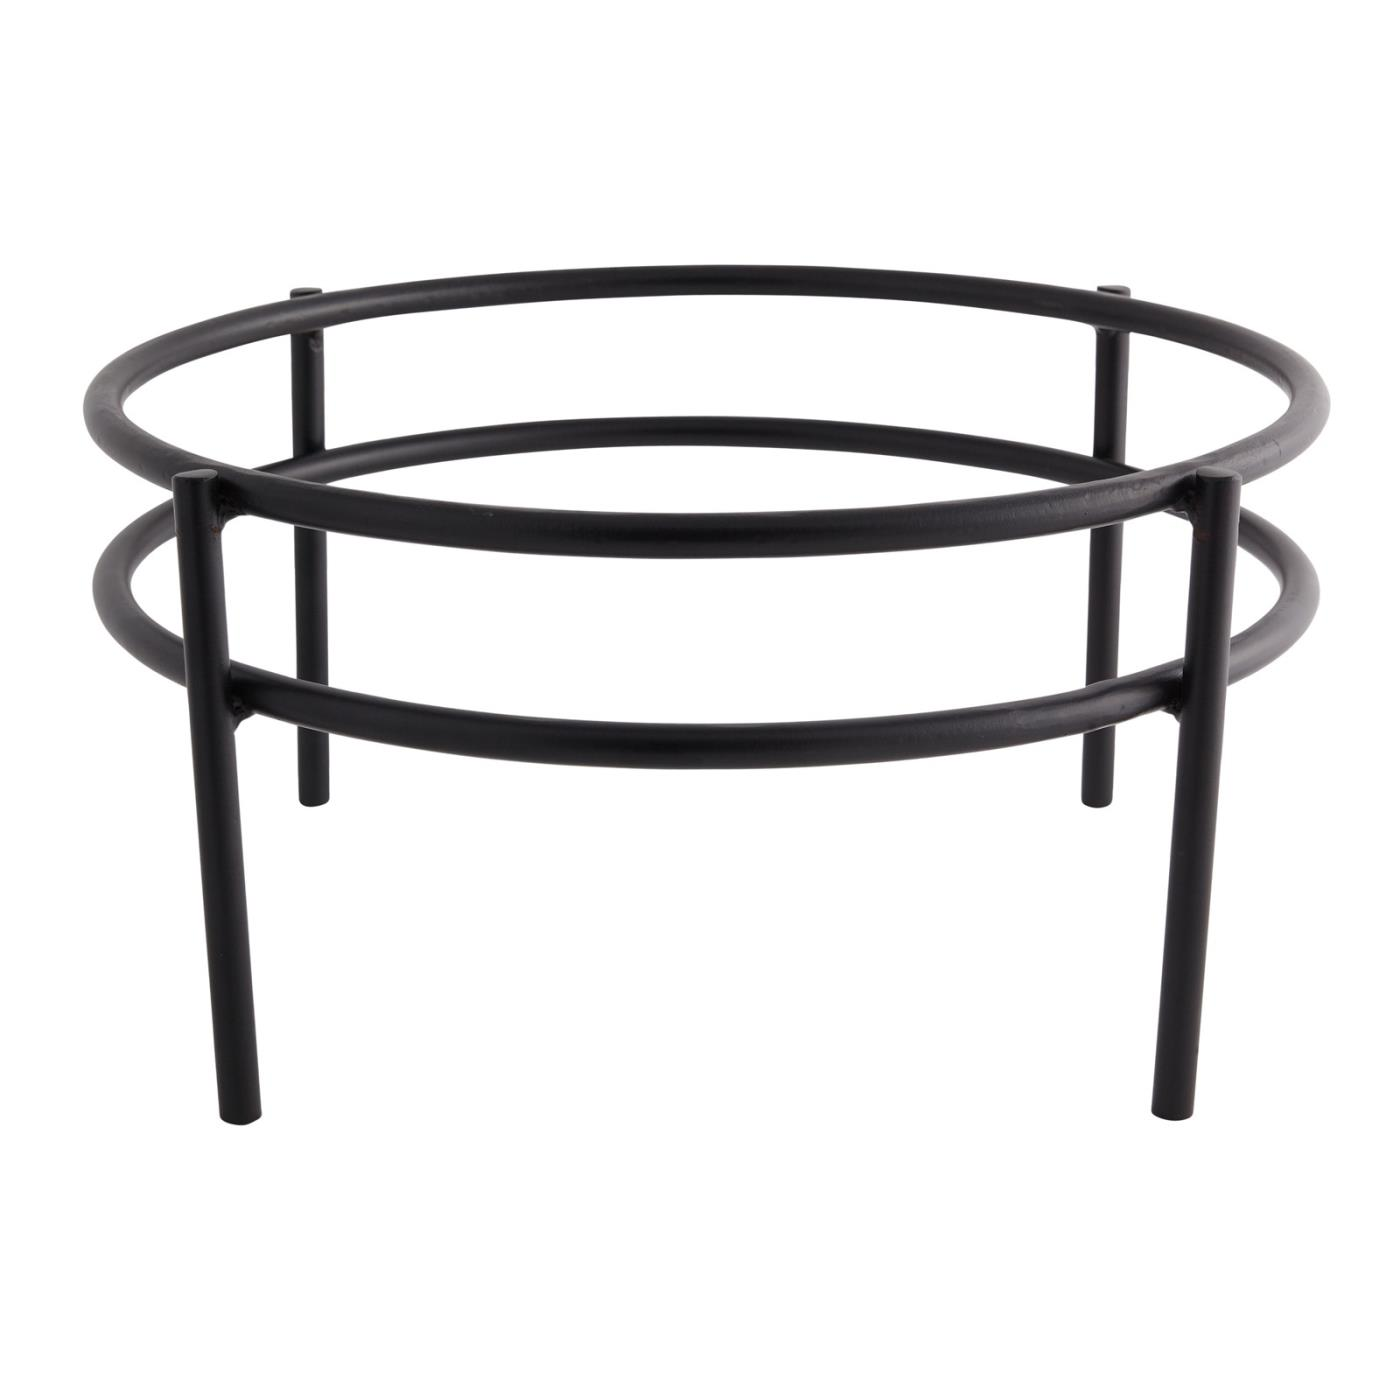 Double Ring Black Stand - 12